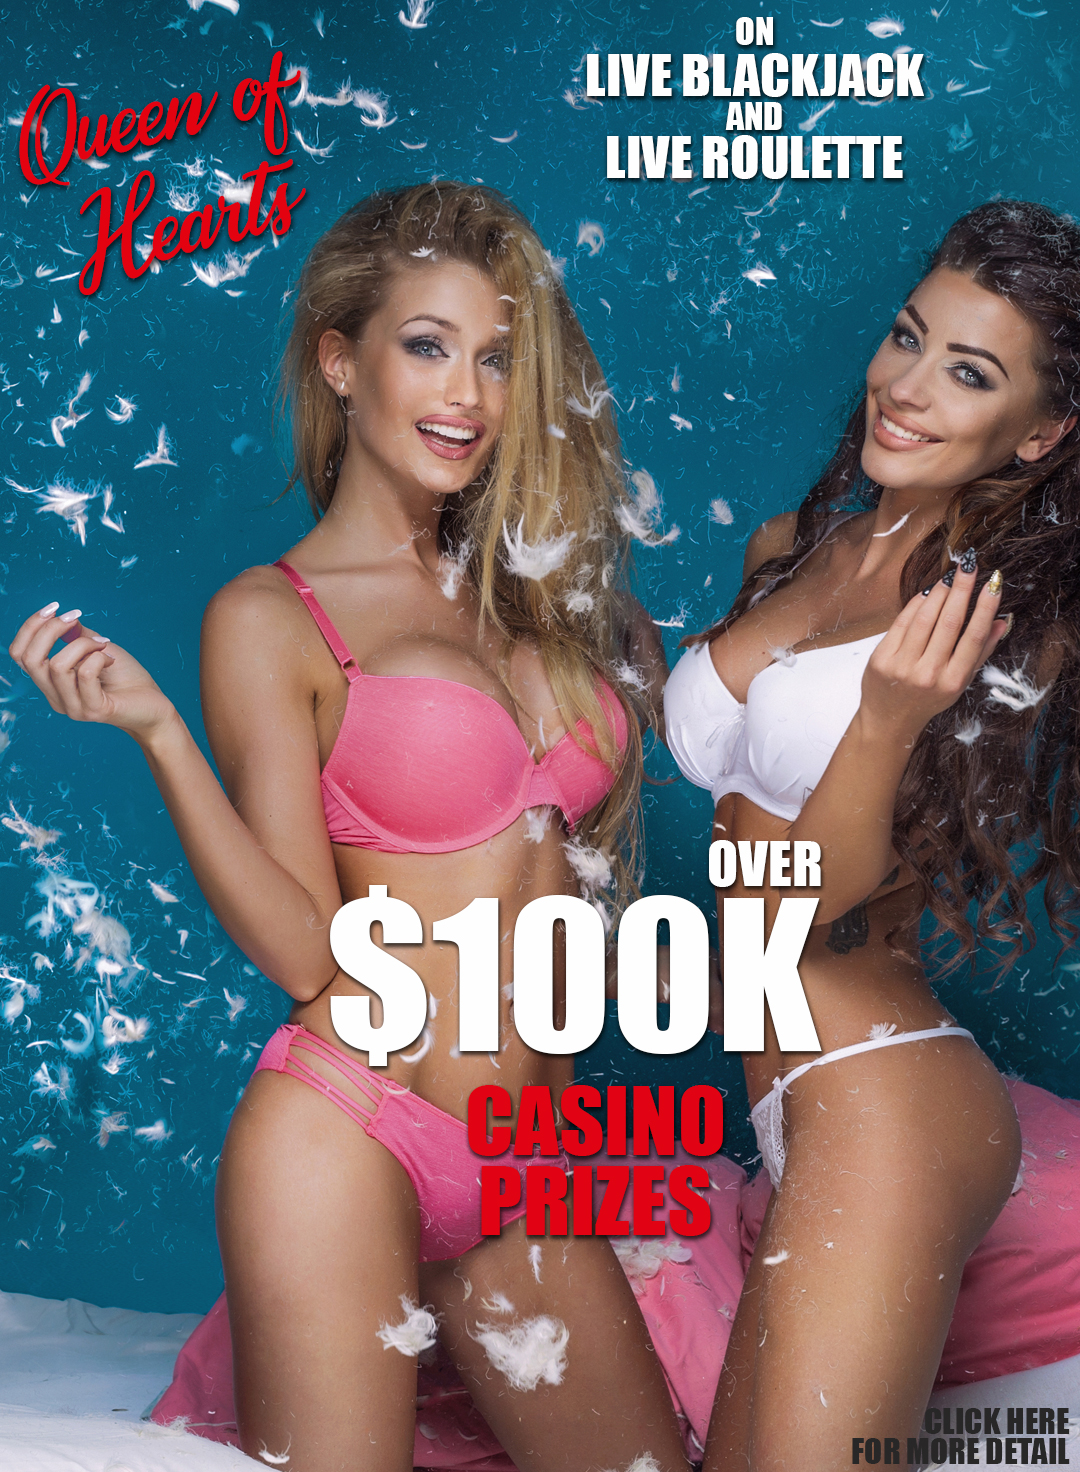 queen-of-hearts-live-casino-bonus-prizes-100k